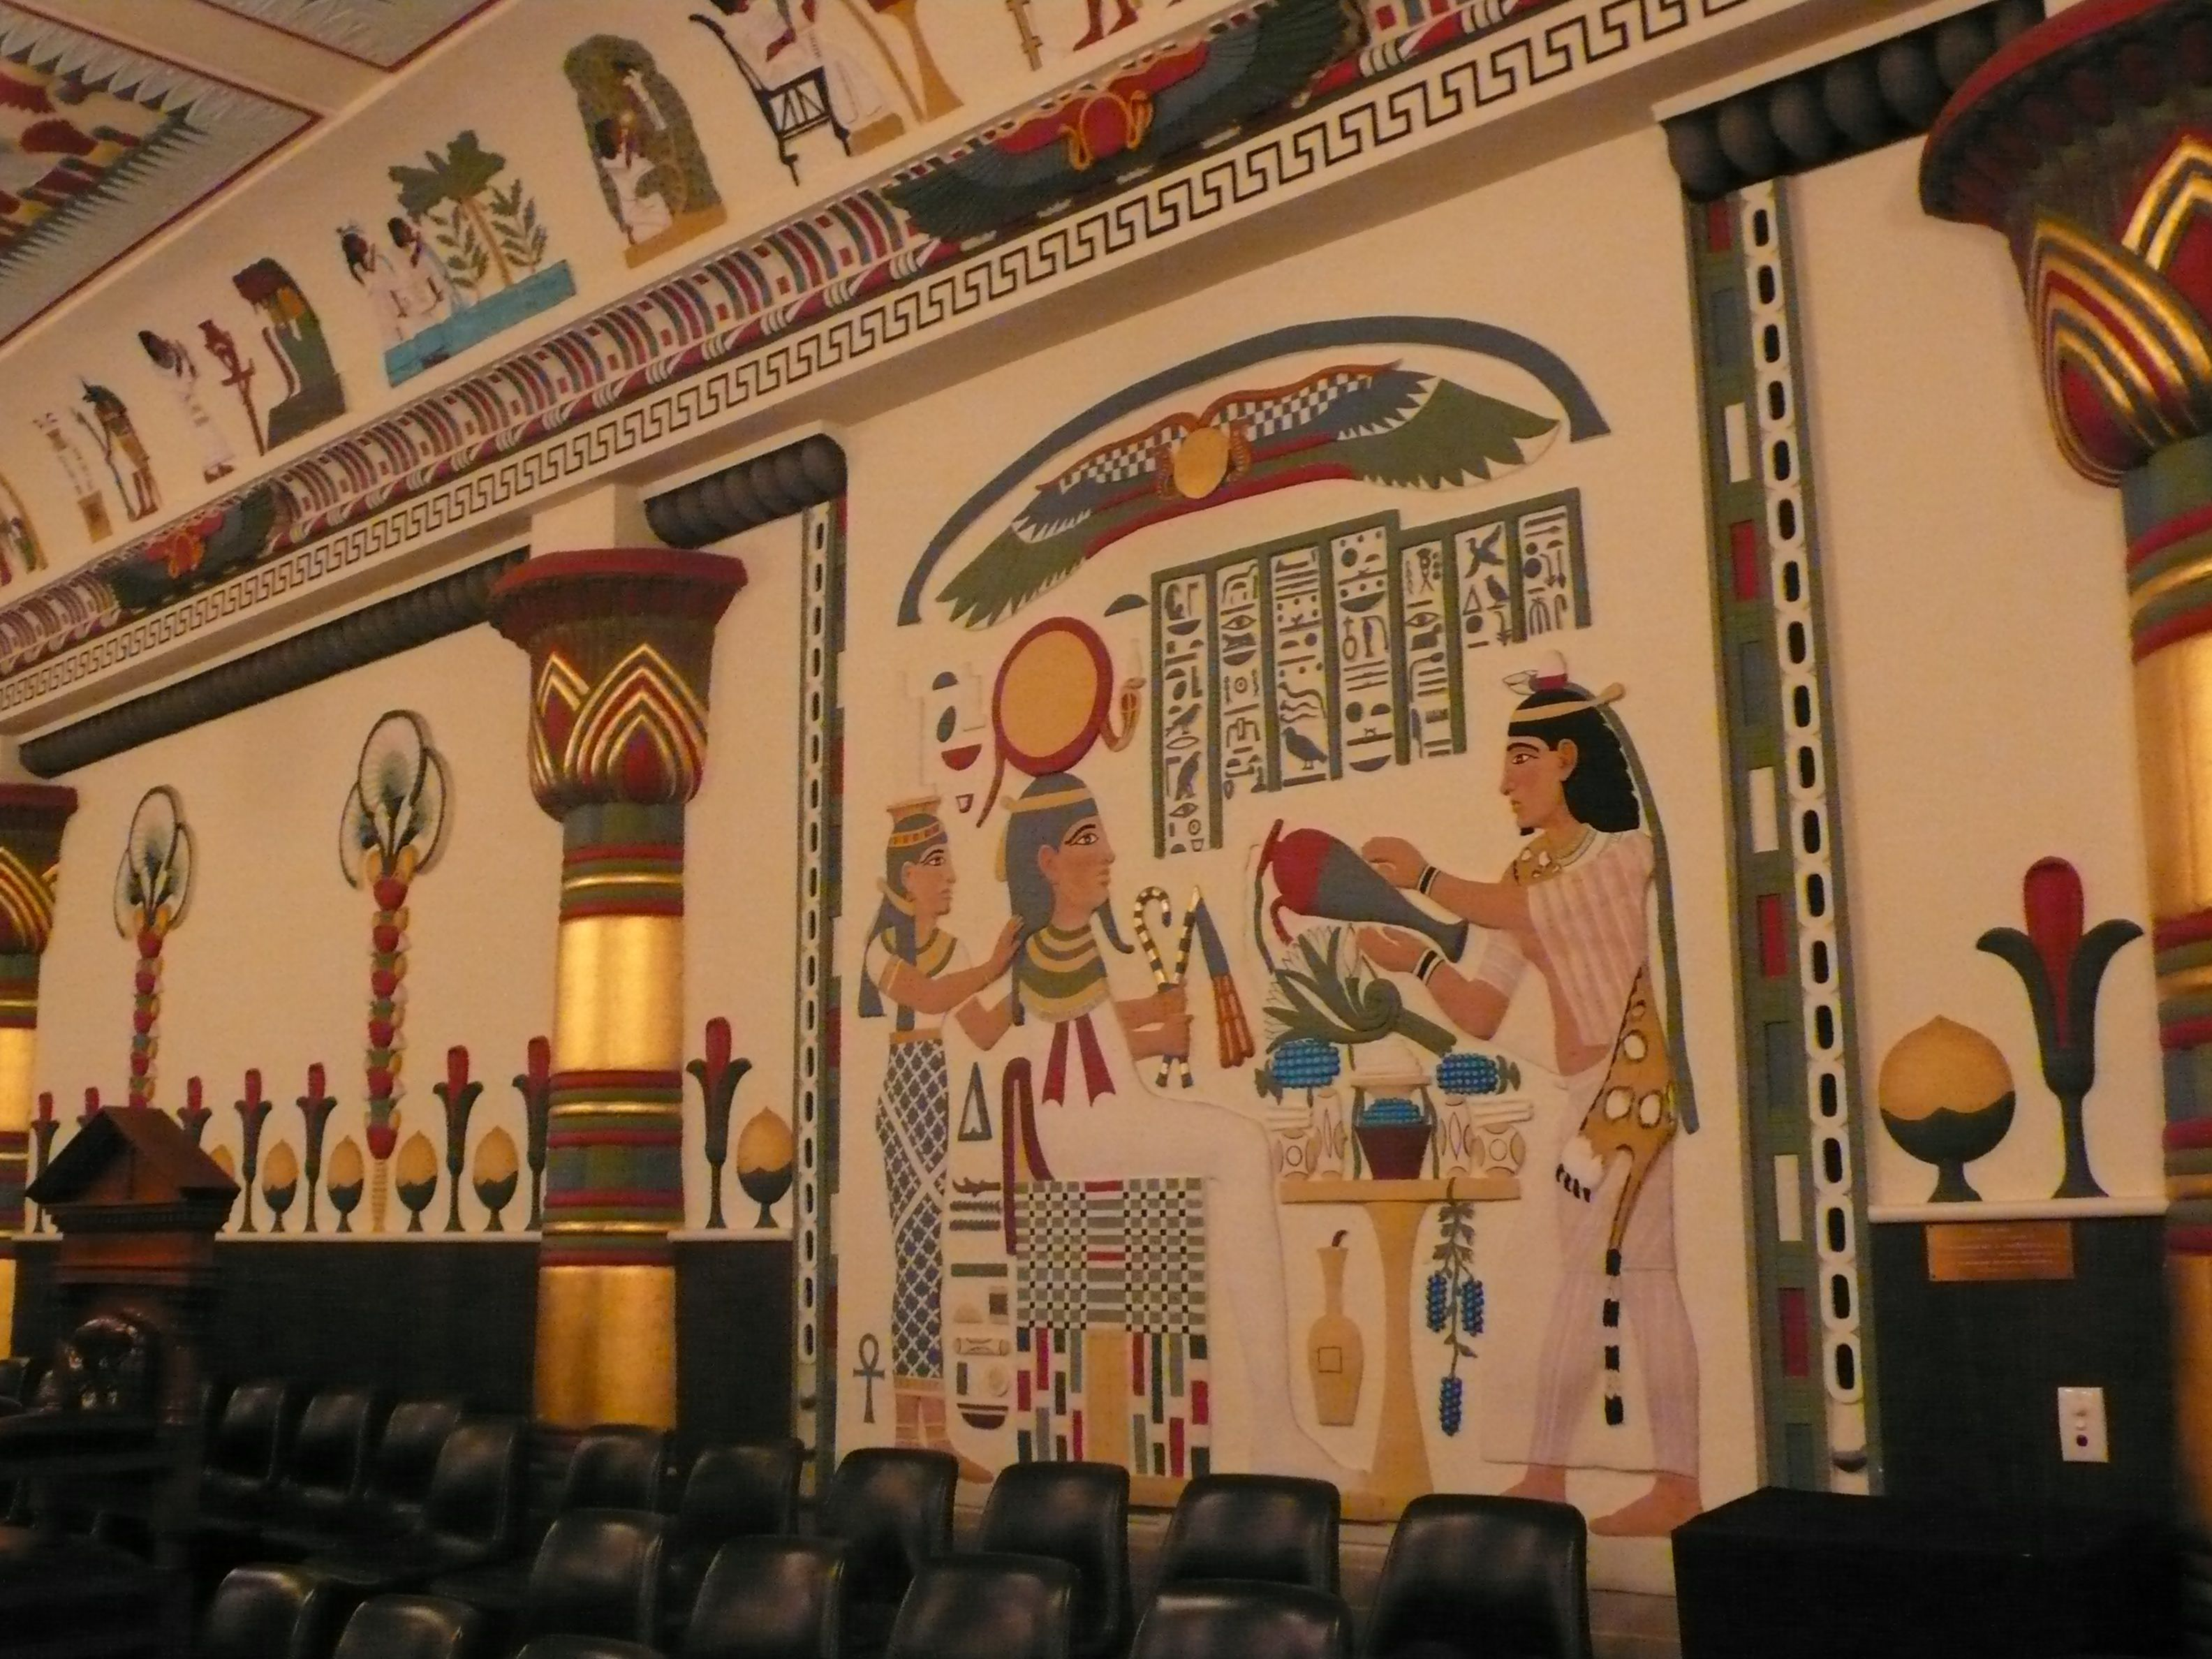 Egyptian Room interior 2